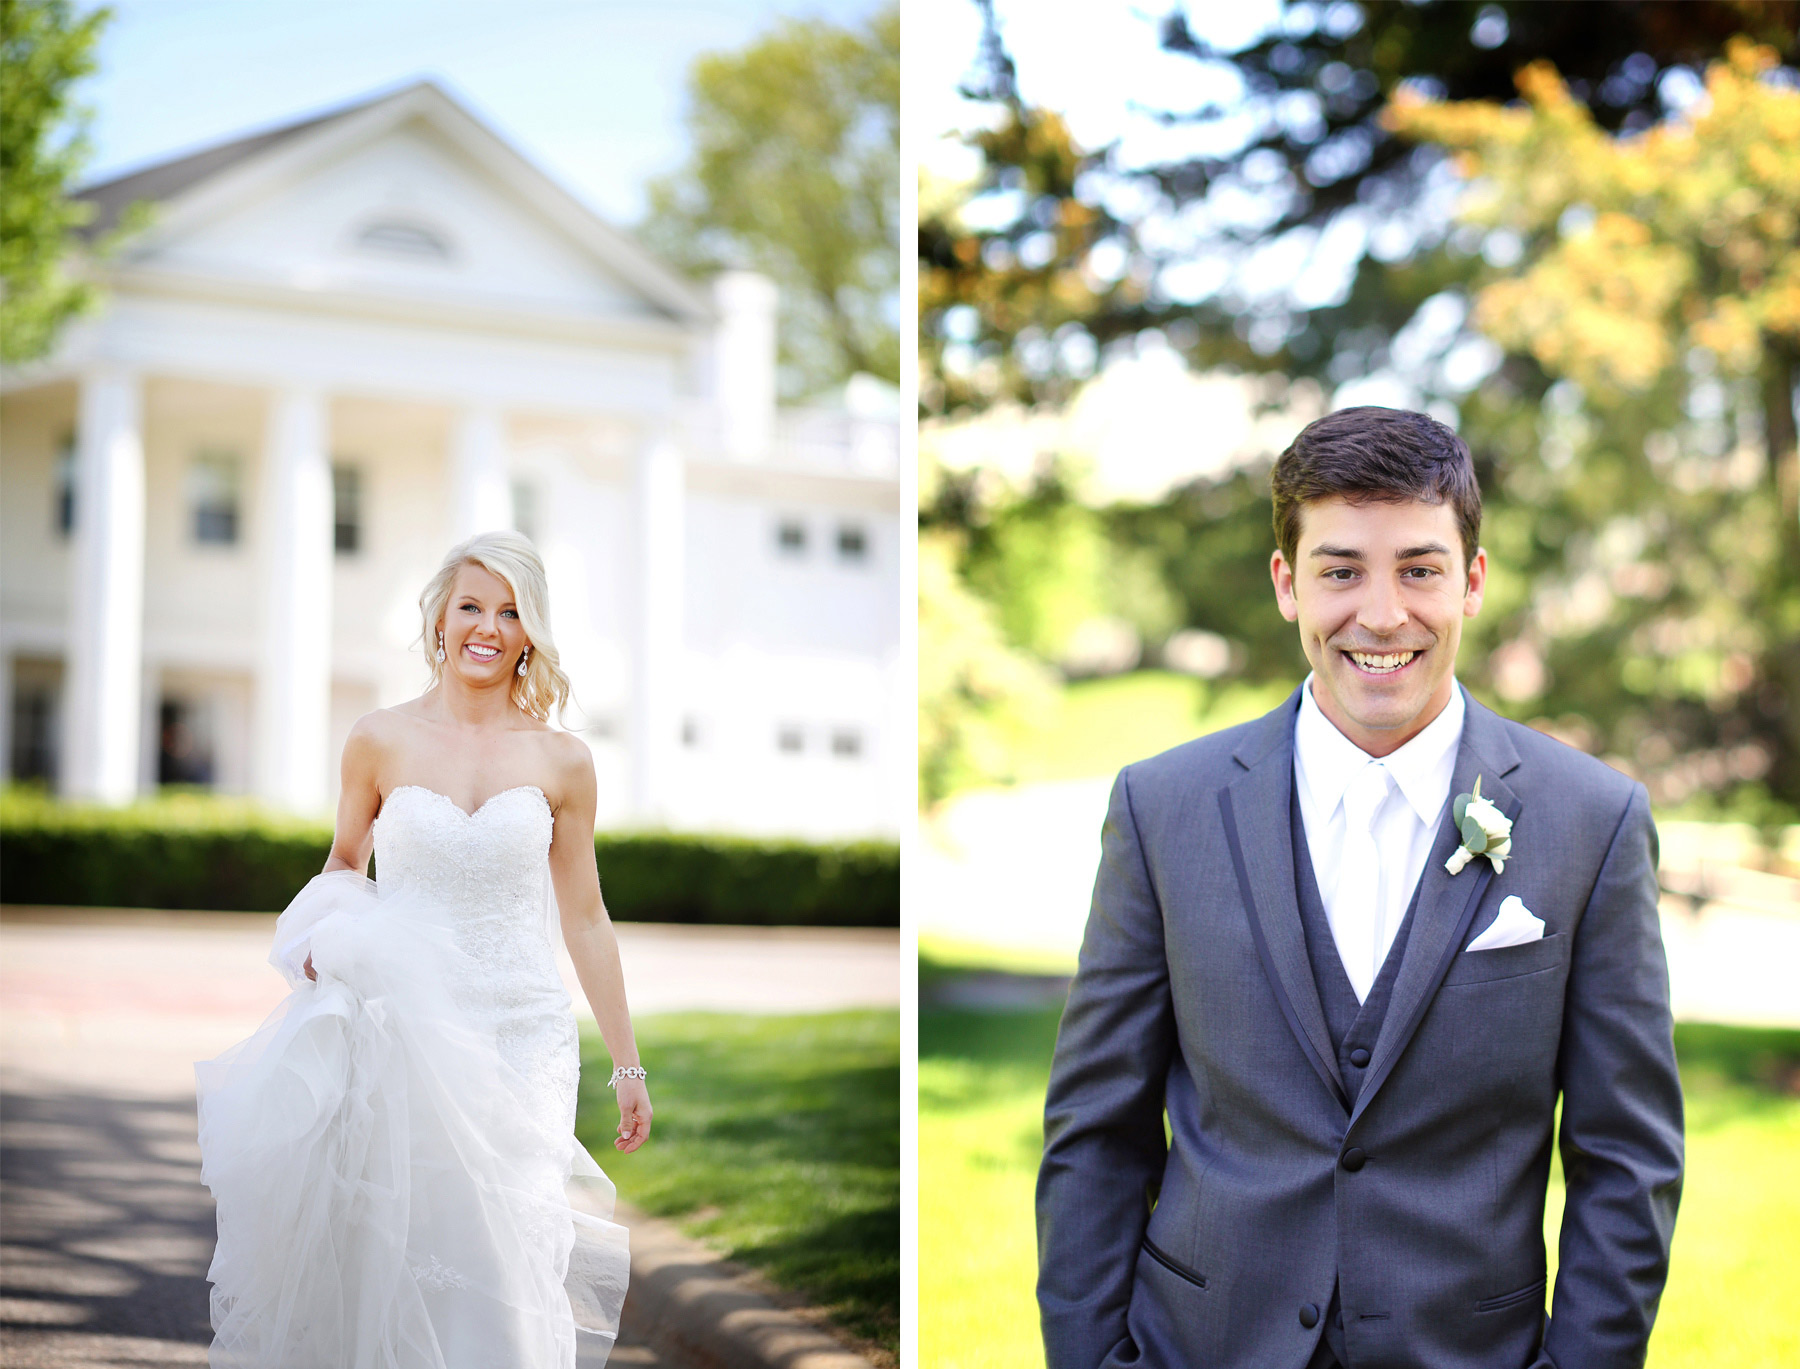 04-Minneapolis-Minnesota-Wedding-Photography-by-Vick-Photography-at-Minikahda-Country-Club-First-Look-Sarah-&-Chad.jpg